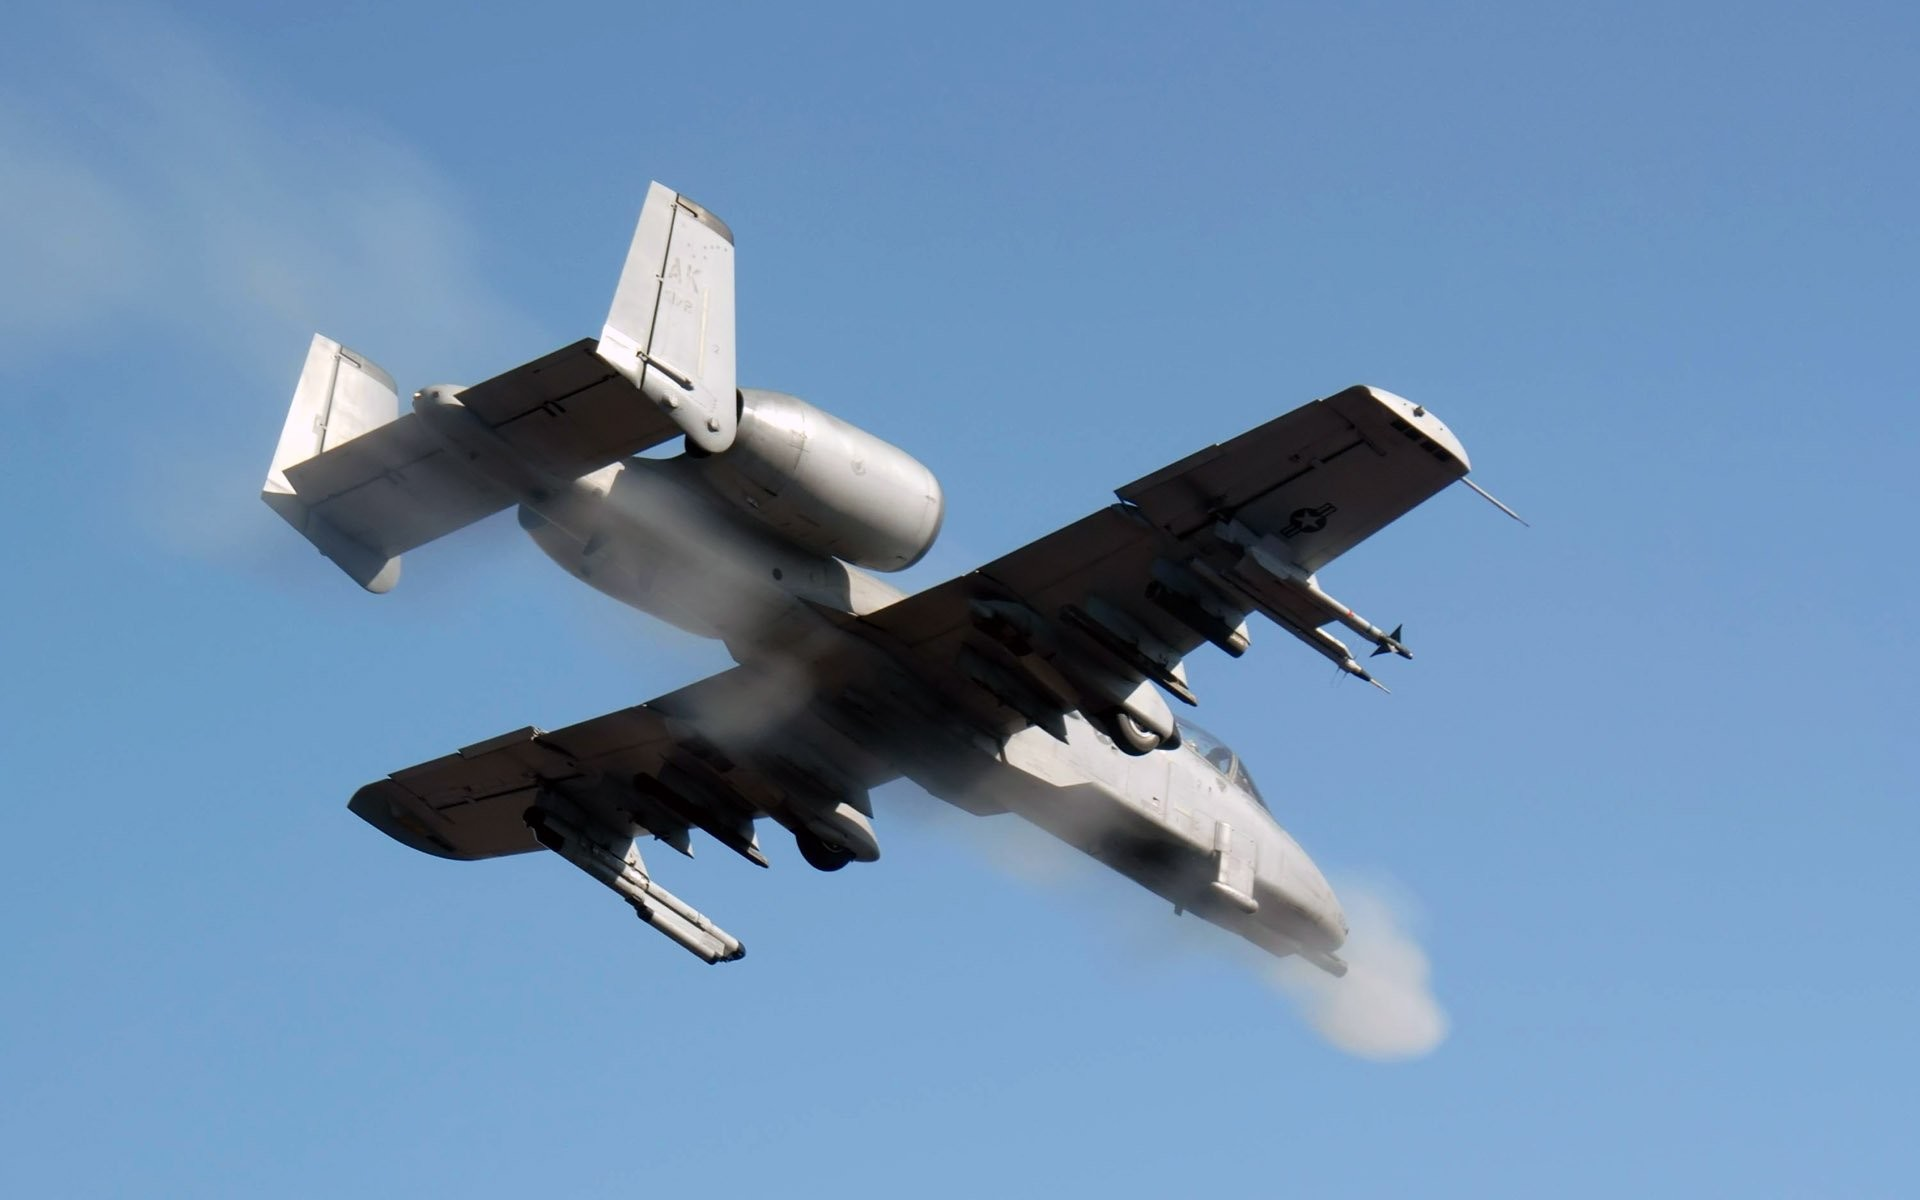 a10-bomber-jet-fighter-bomb-military-airplane-plane-thunderbolt-warthog-74- wallpaper-1.jpg (1920×1200) | UNITED STATES AIR FORCE | Pinterest | Air  force